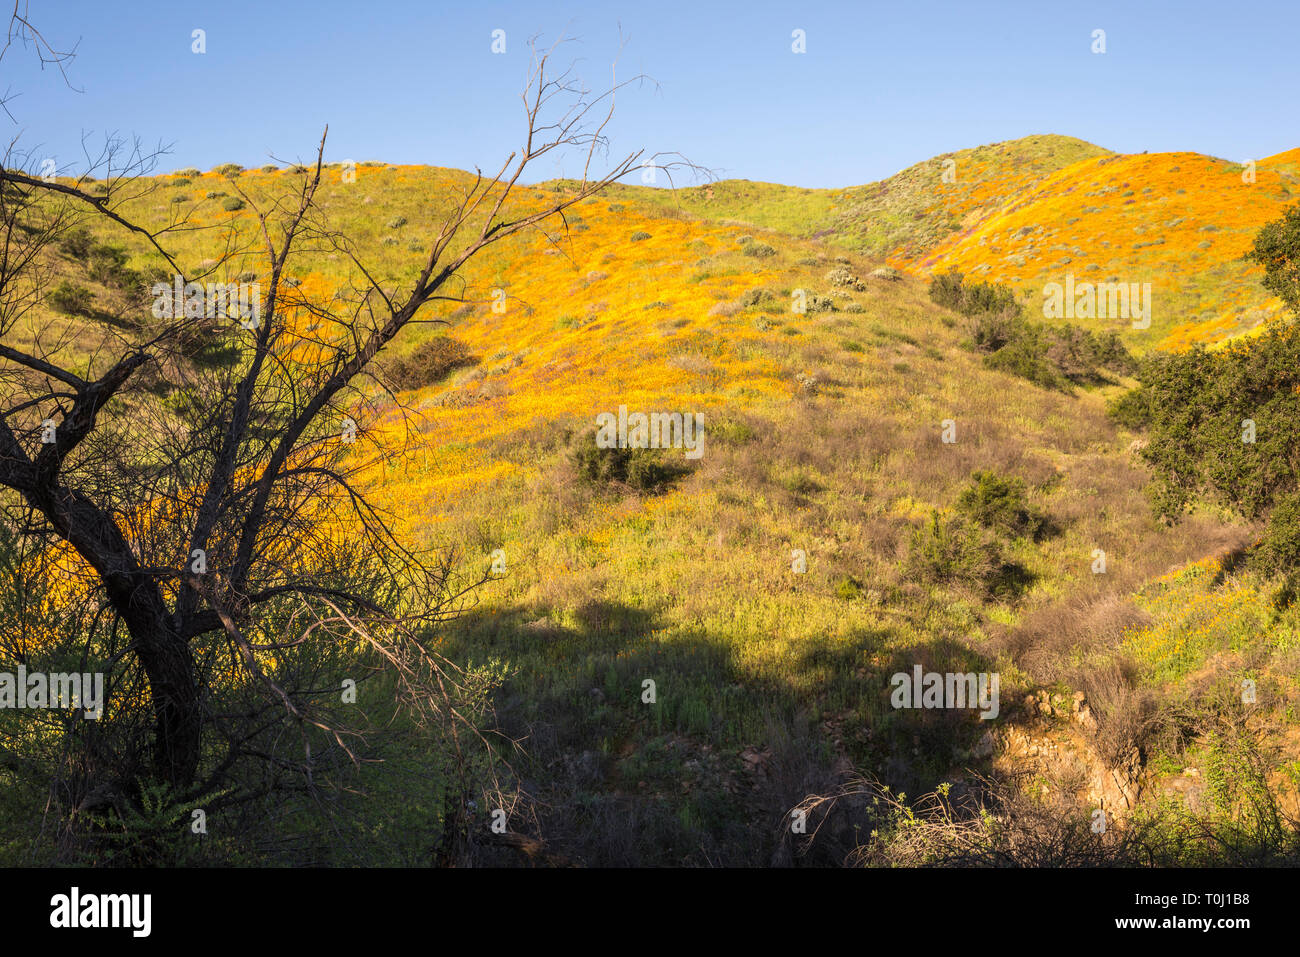 Wildflower superbloom in Walker Canyon in the month of March. Lake Elsinore, California, USA. - Stock Image